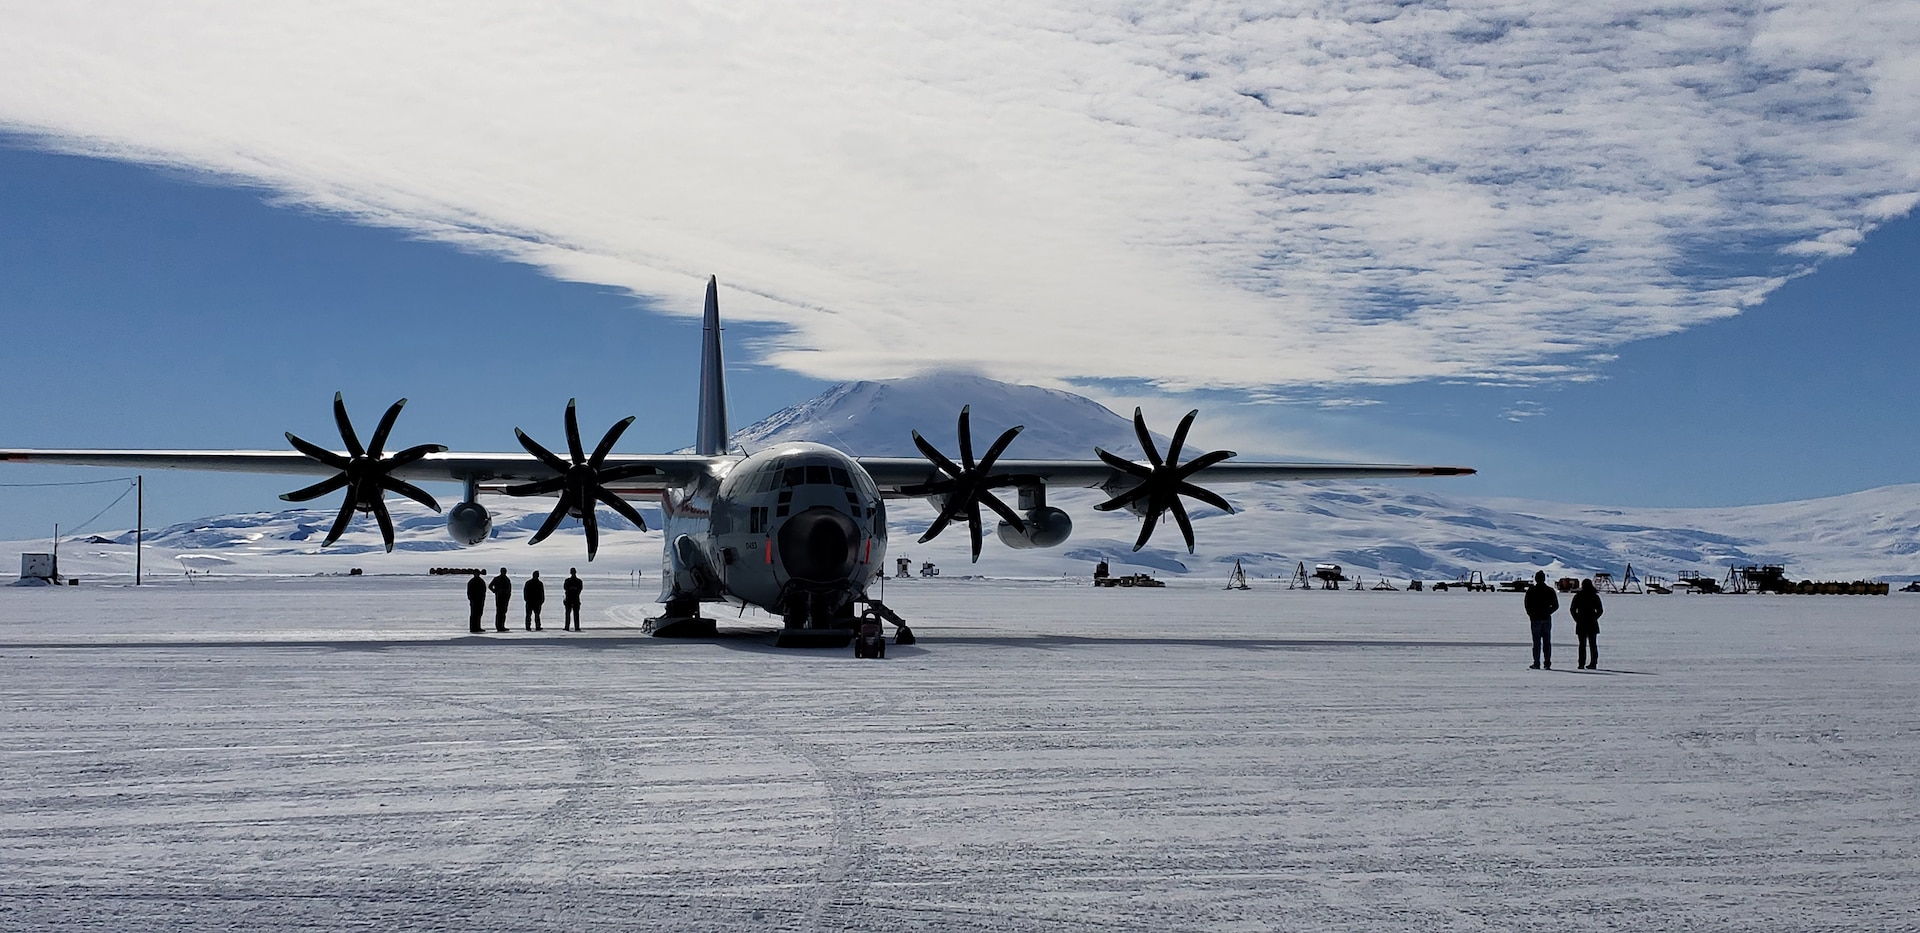 109th Airlift Wing to Support Science Missions in Antarctica